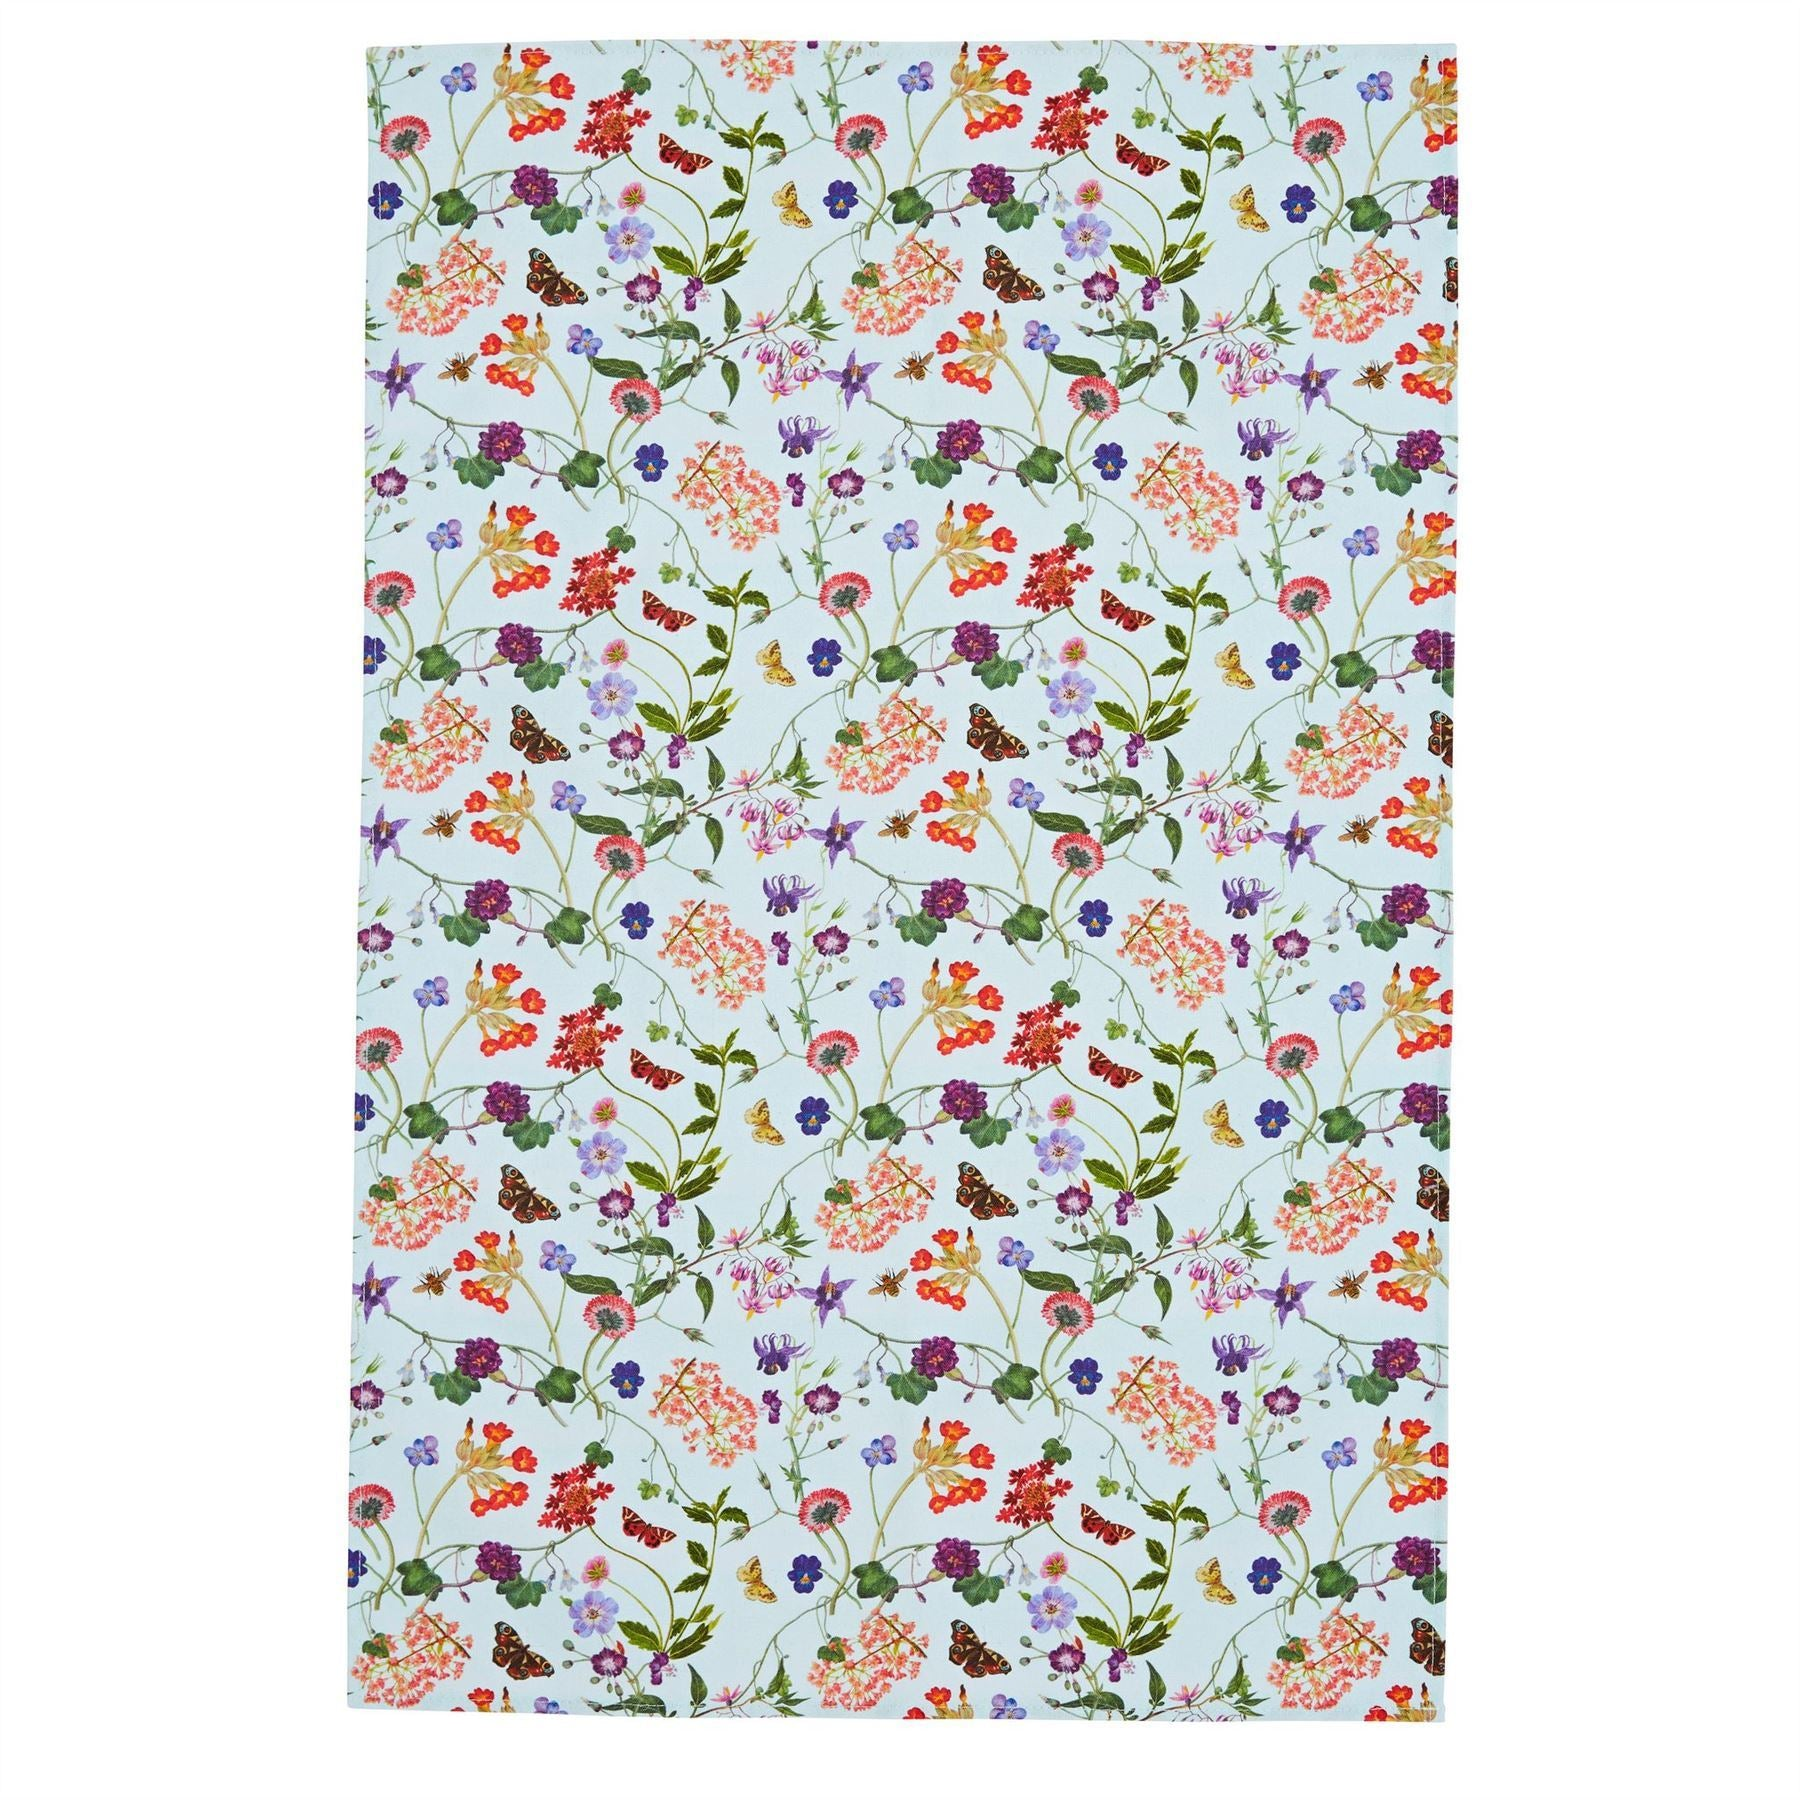 Ulster Weavers 100% Cotton Tea Towel - RHS Spring Floral